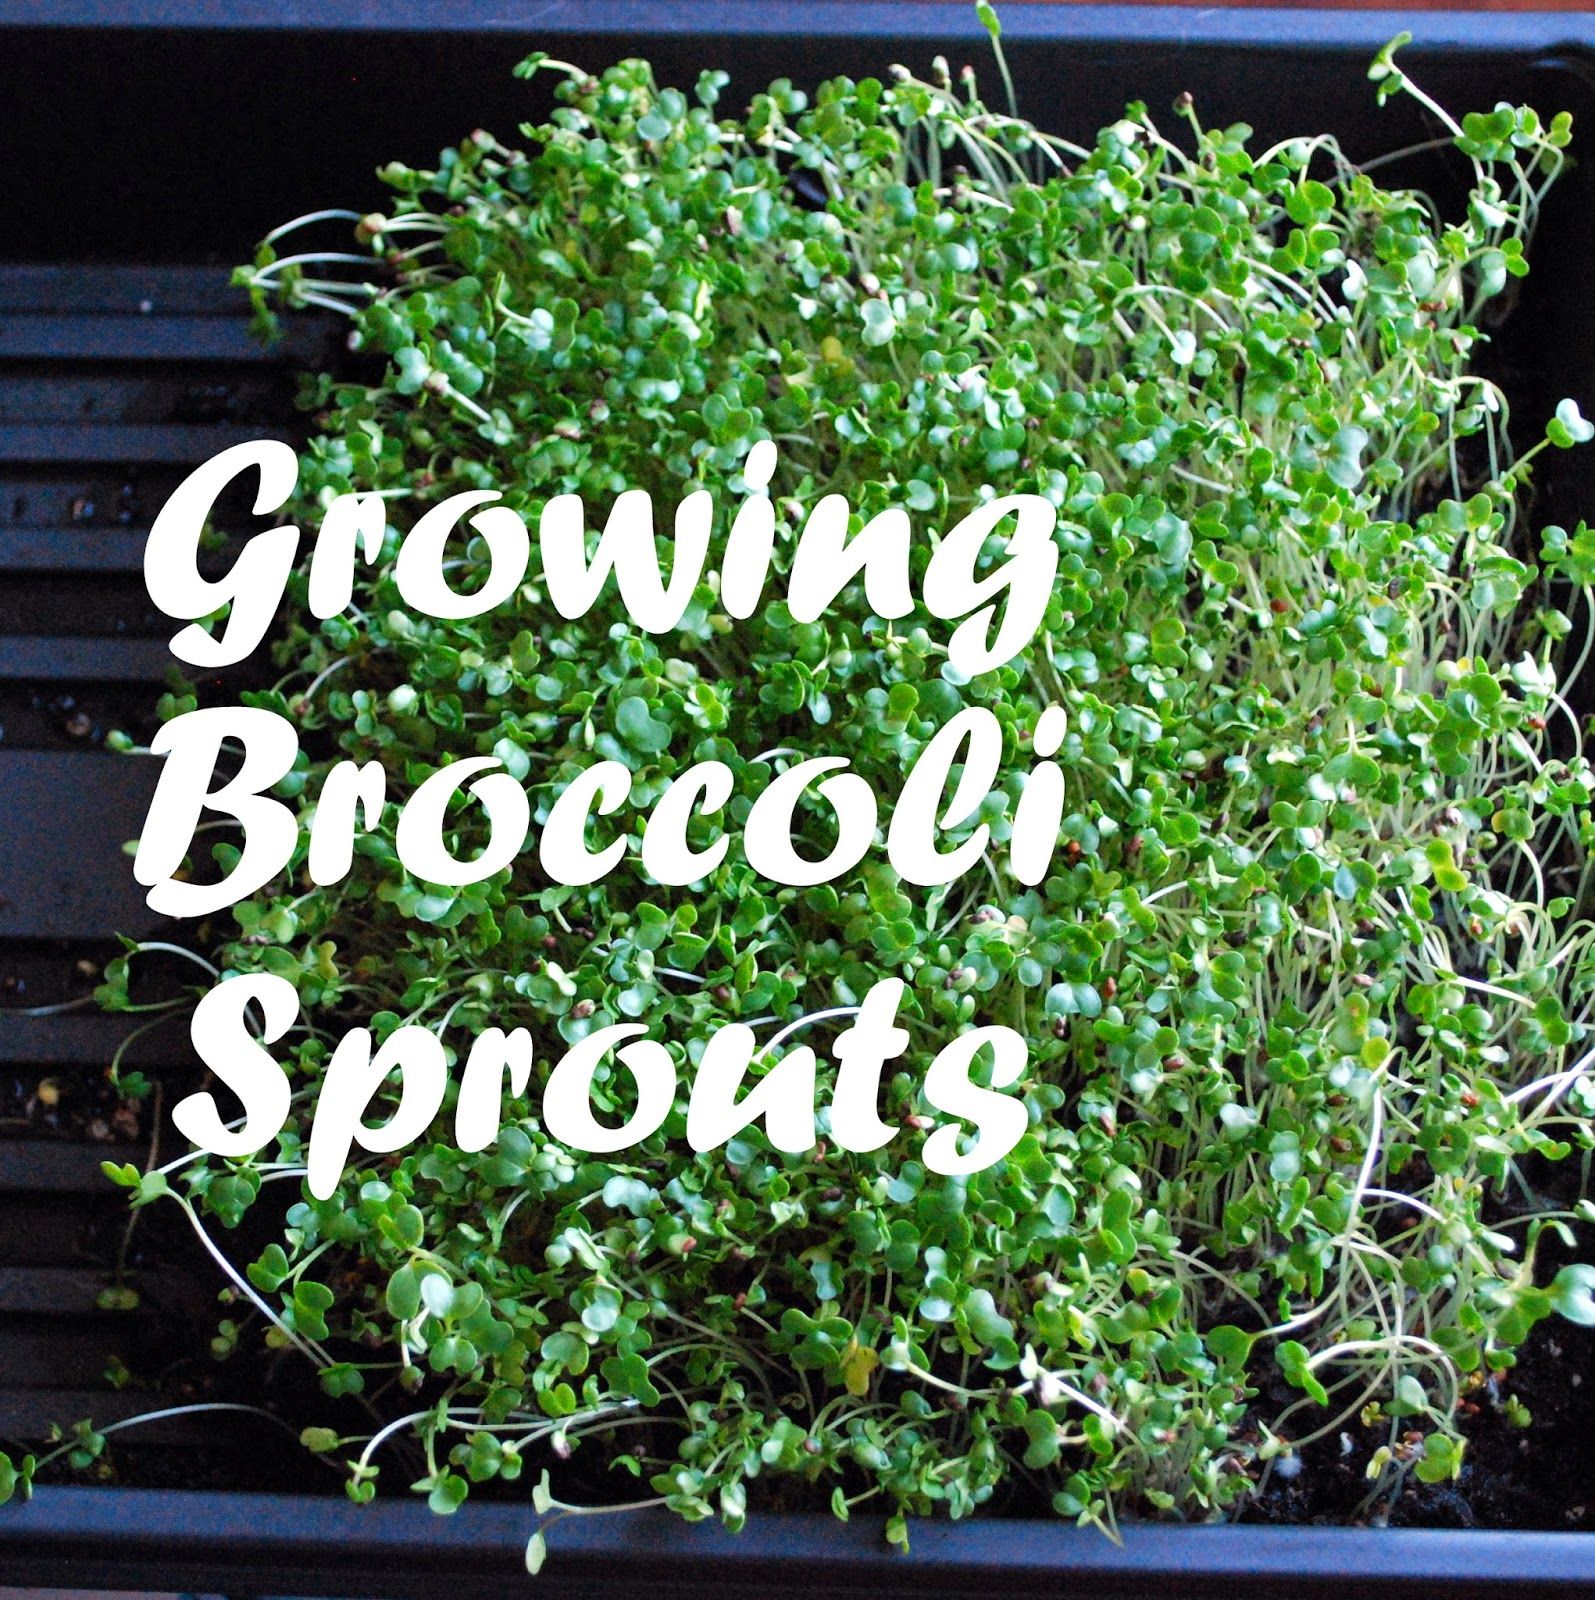 Sprouting broccoli for fast, nutritious food.